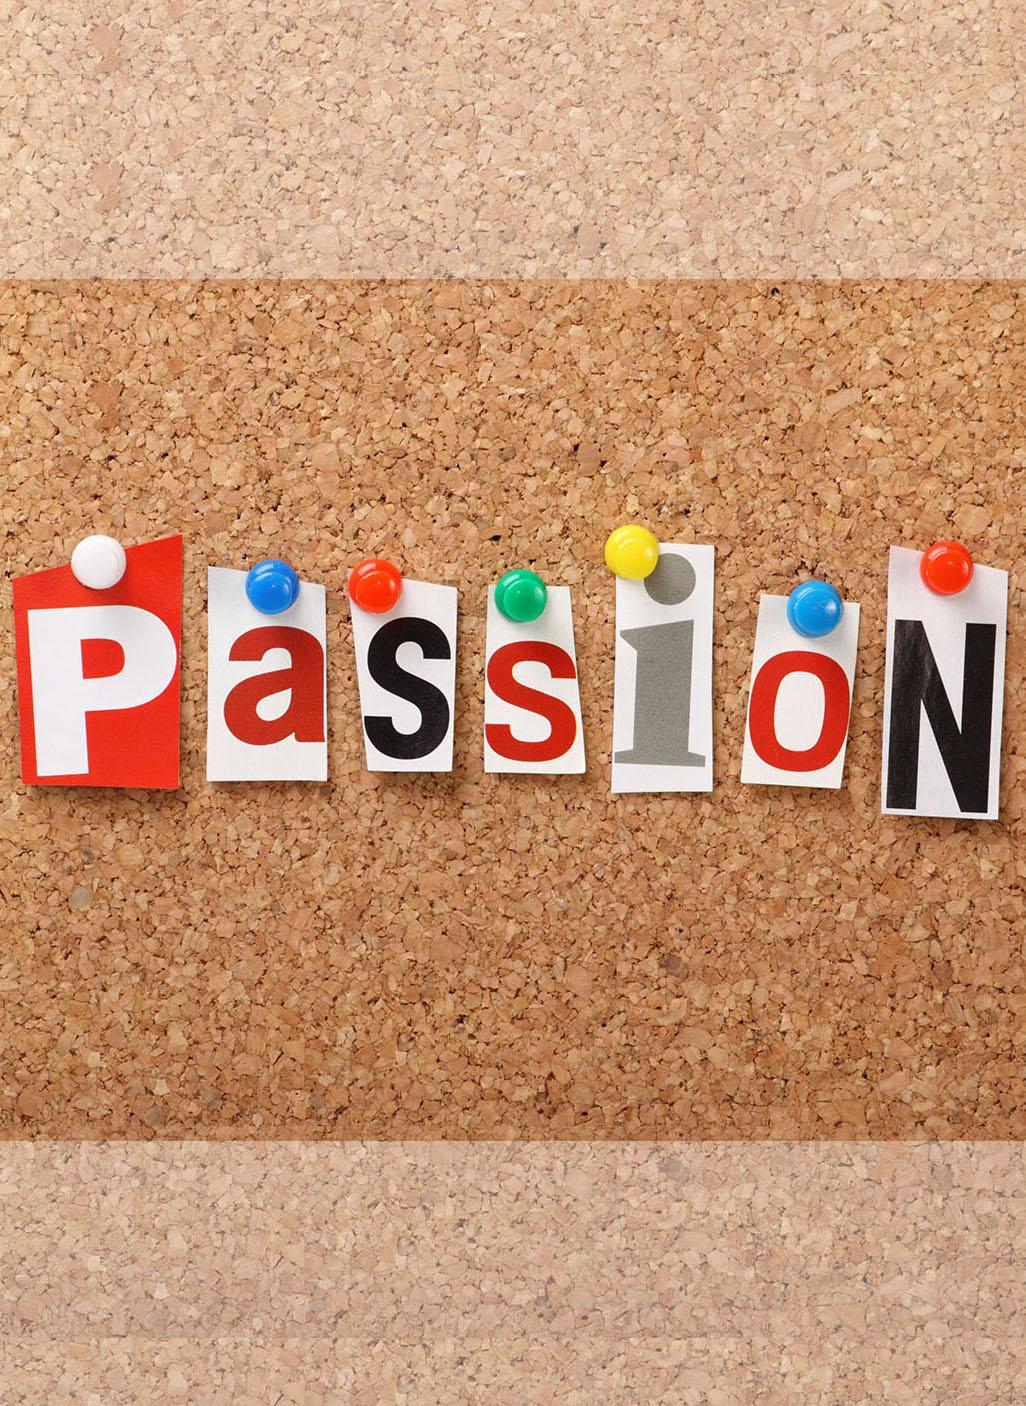 Passion on a corkboard with each individual letter cut out of a magazine